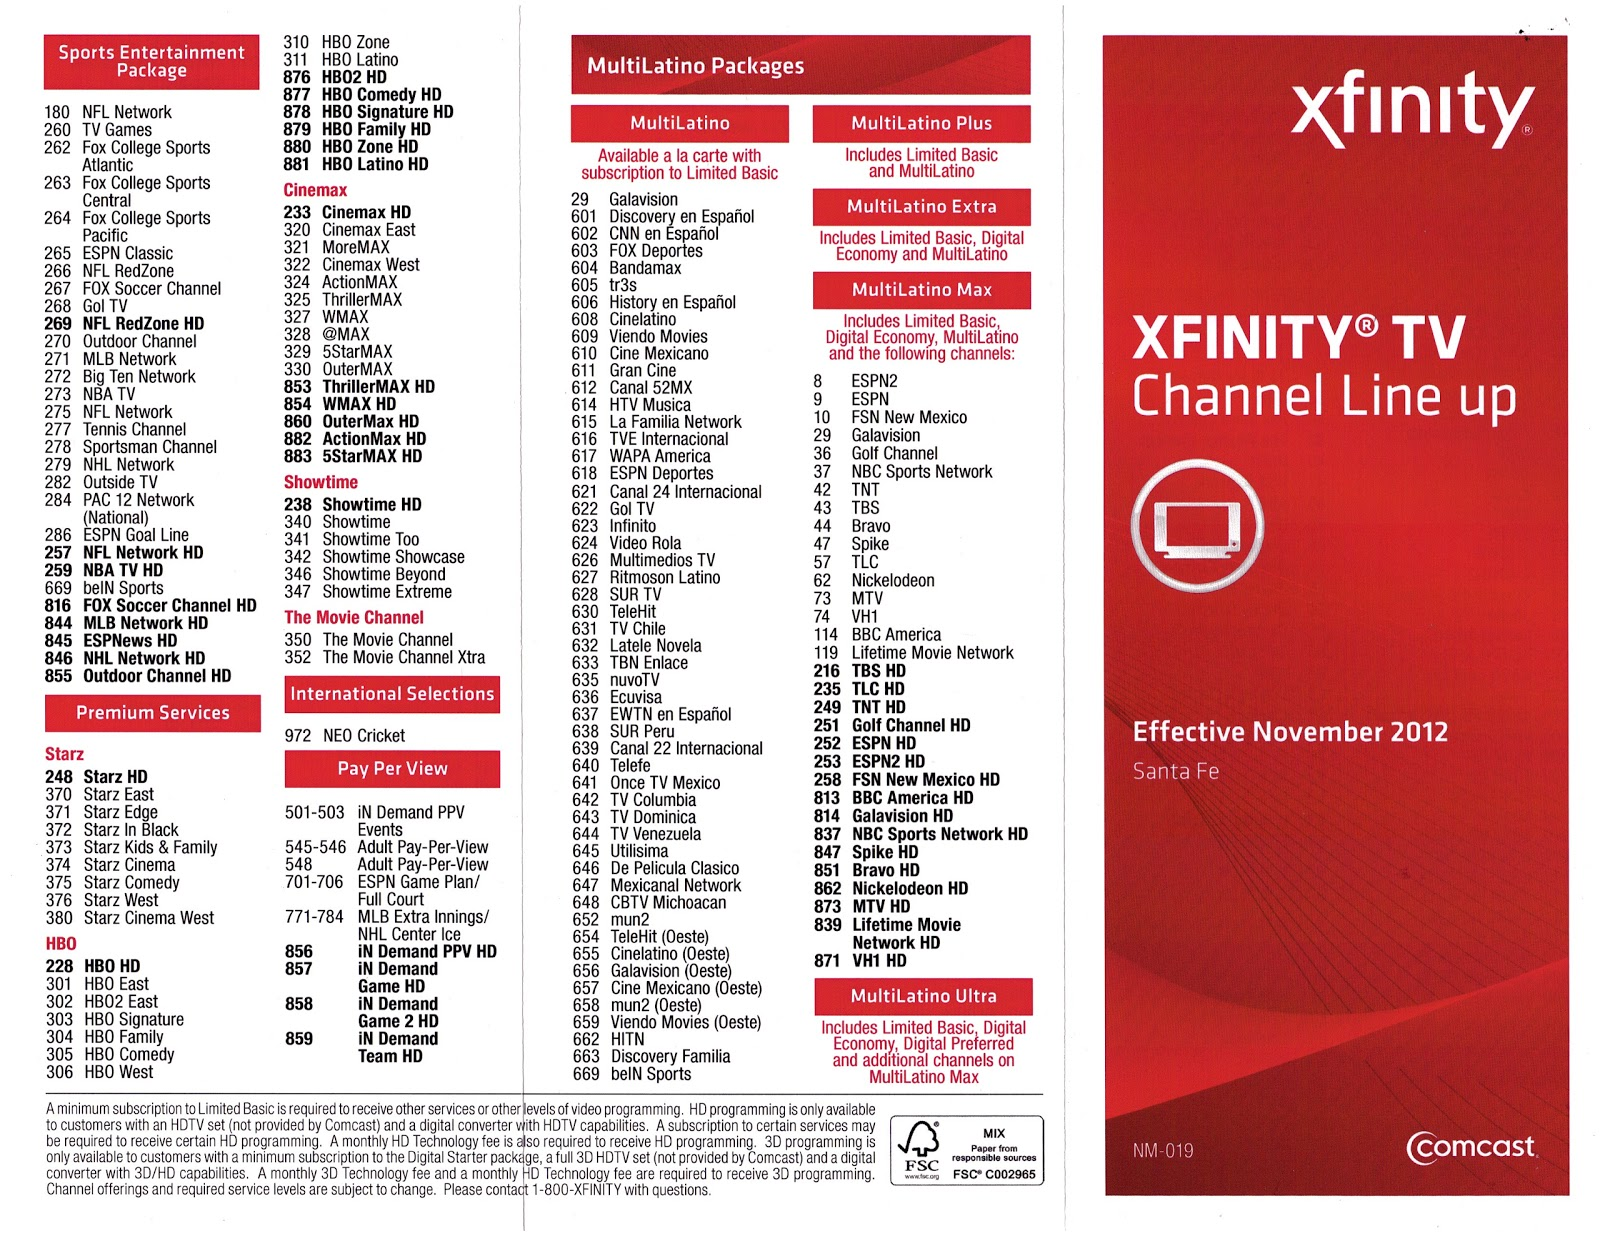 Exceptional image regarding printable comcast channel lineup